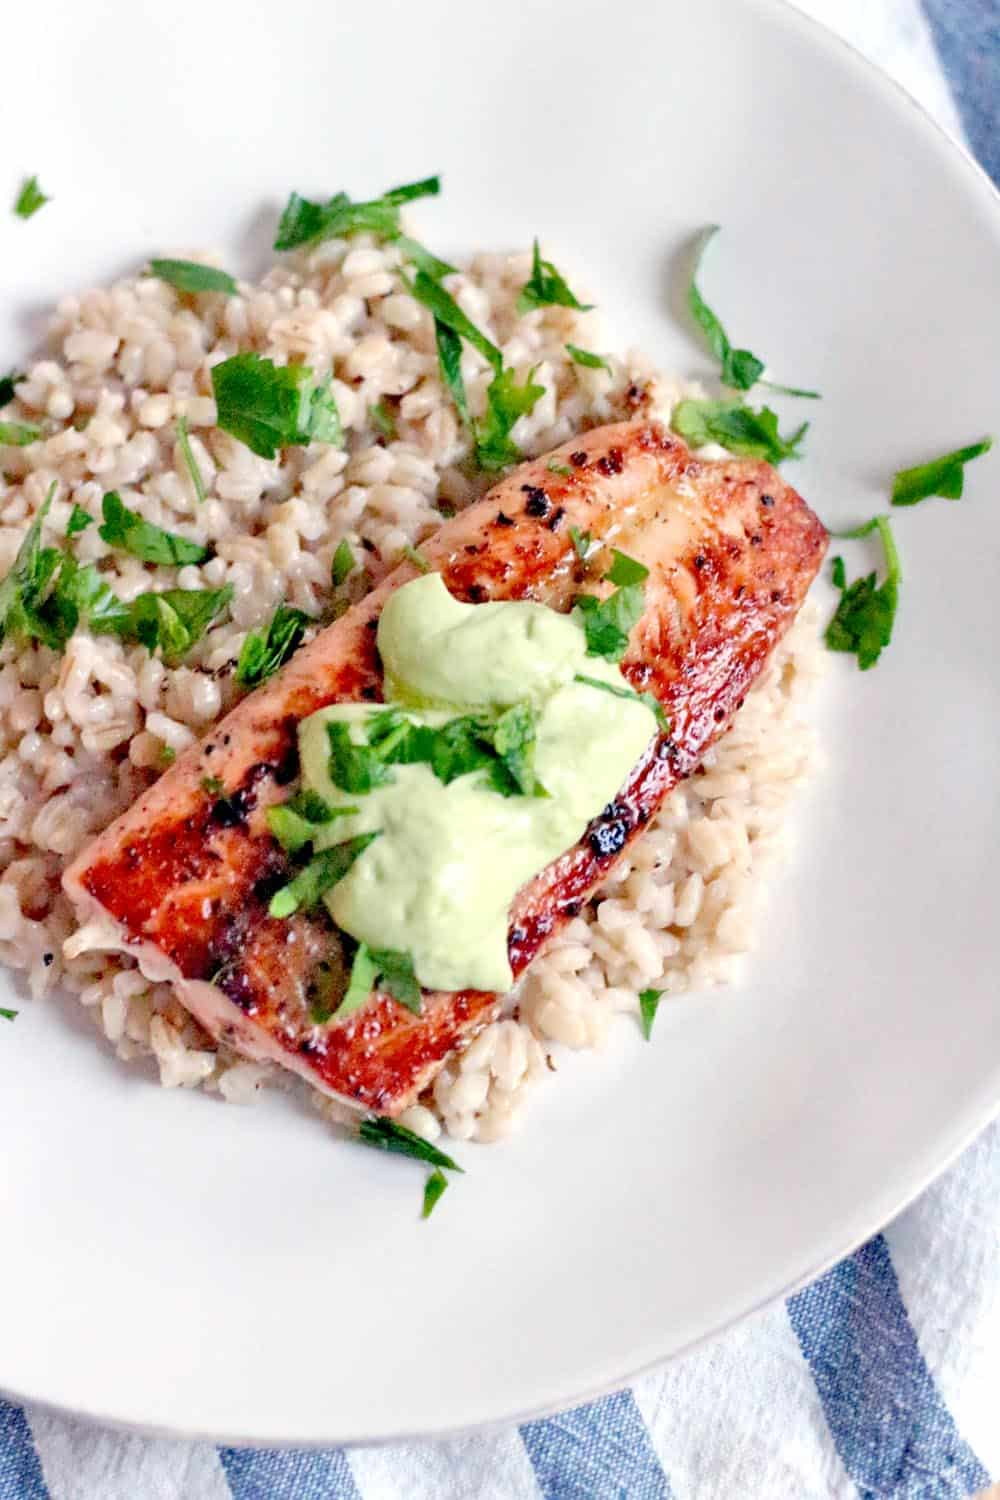 Seared Salmon with Avocado, Lemon, and Garlic Aioli | This perfectly seared salmon pairs so well with the simple, bright, and tangy avocado, lemon, and garlic aioli and takes only 10 minutes to make! The sauce steals the show- you're going to want to put it on everything!